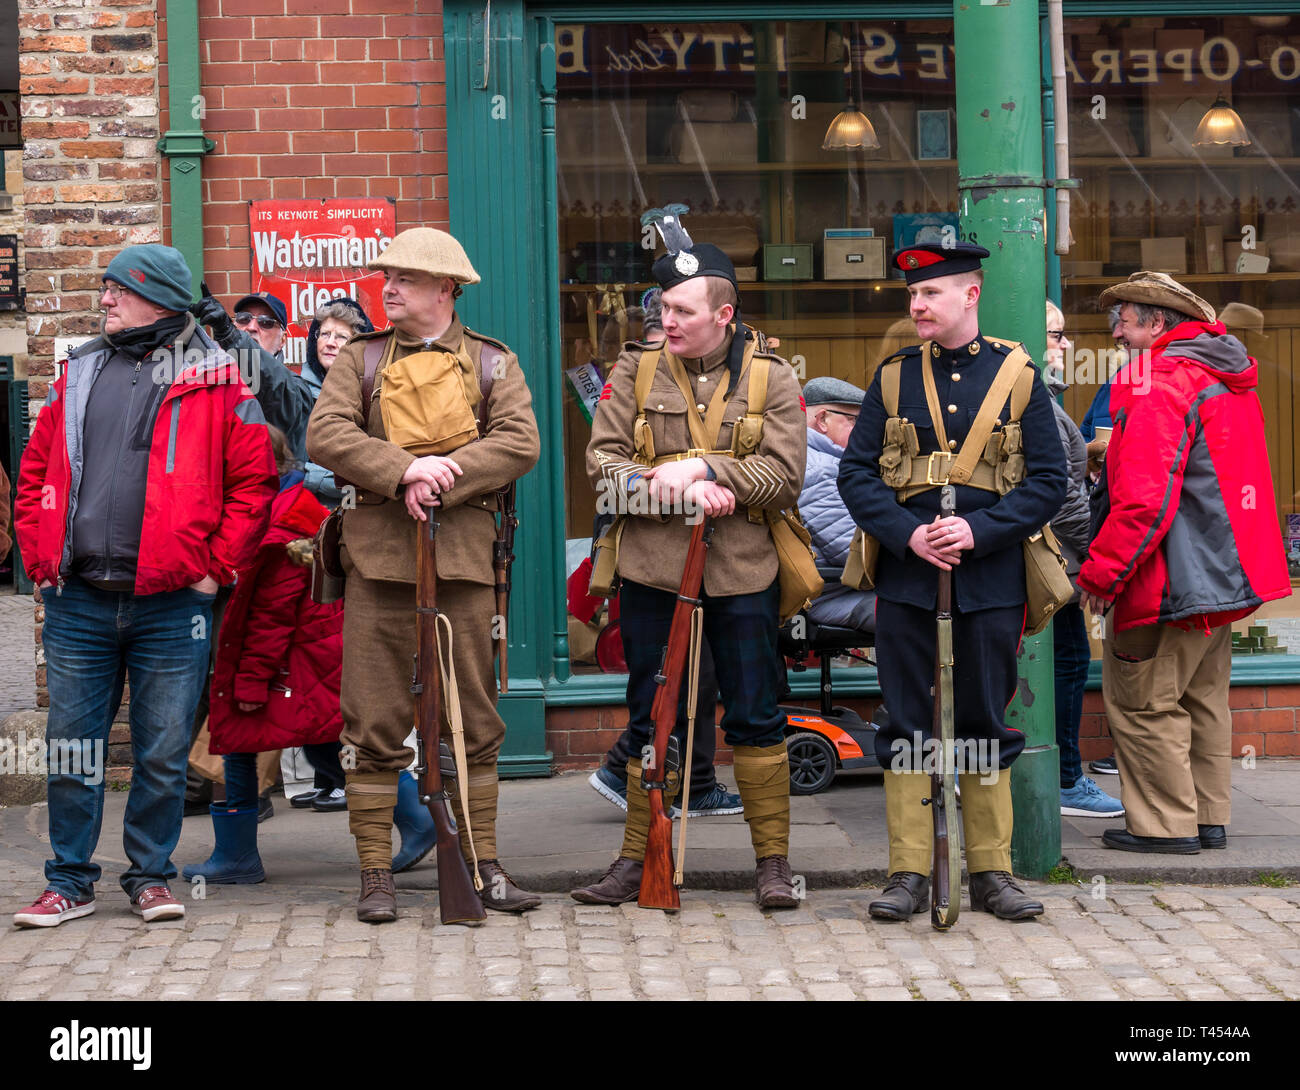 Beamish, Durham County, England, United Kingdom, 13 April 2019. Beamish Steam Day: Men dressed in vintage soldier uniforms from Scots in the Great War living history group, from L to R: Private in Tyneside Scottish, Pipe Major in Argyll & Sutherland Highlanders and Royal Marine Light Infantryman - Stock Photo